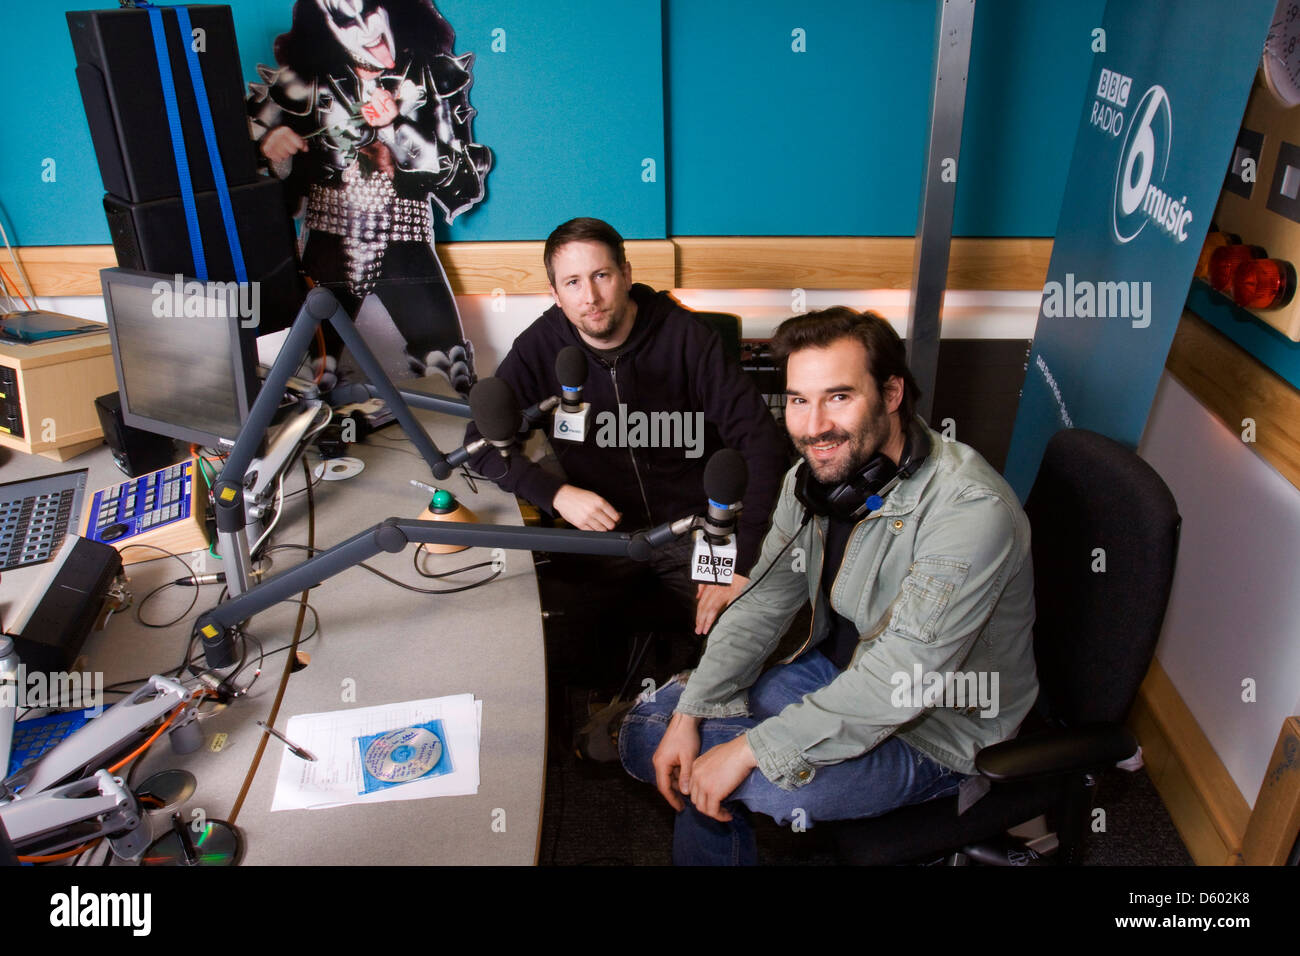 Adam Buxton and Joe Cornish, English comedians from the Adam and Joe radio show at BBC 6 Music, London, England. Stock Photo